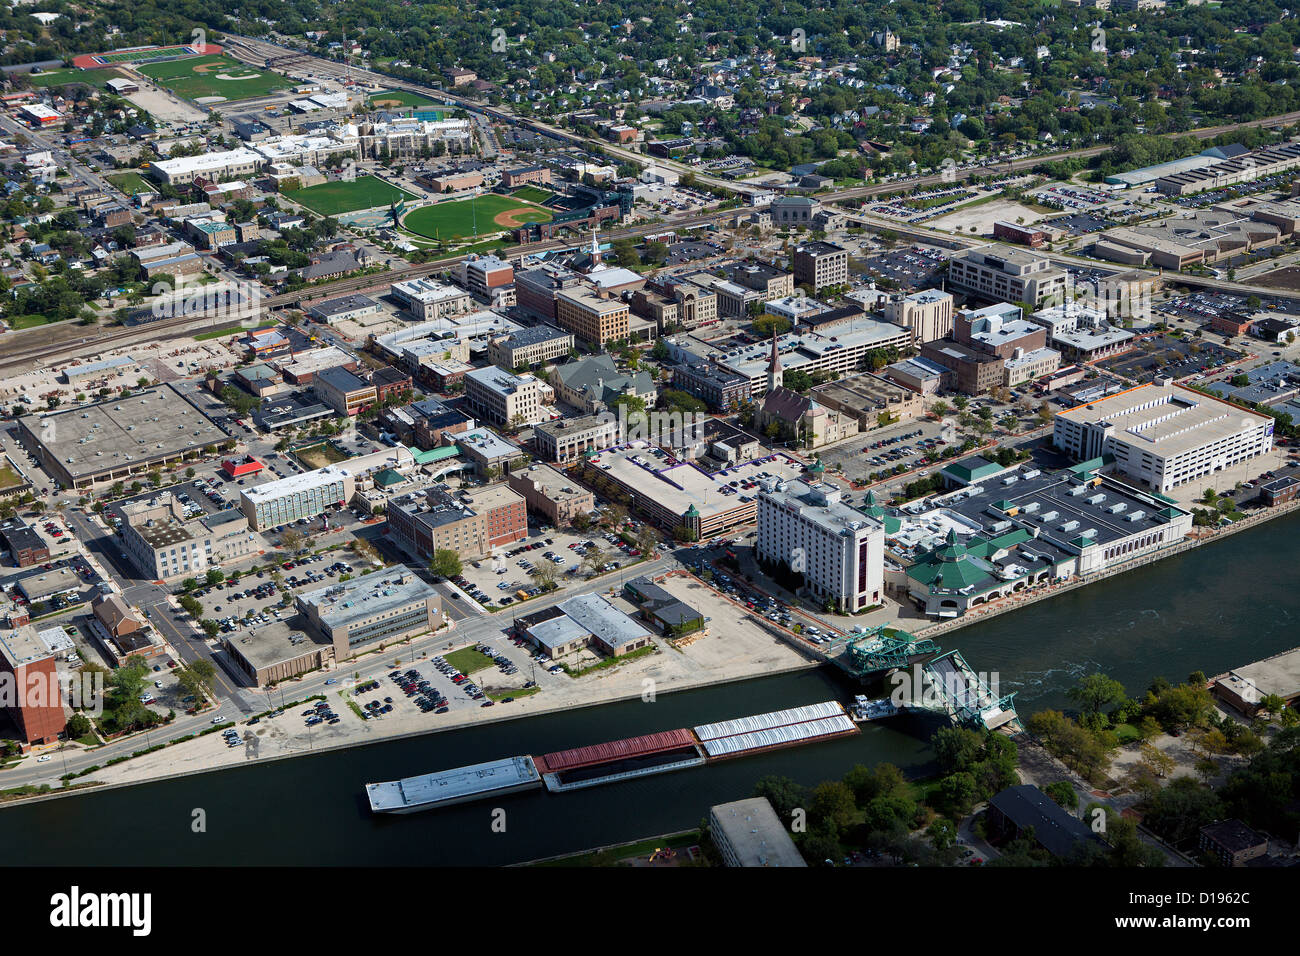 aerial photograph Joliet, Illinois - Stock Image